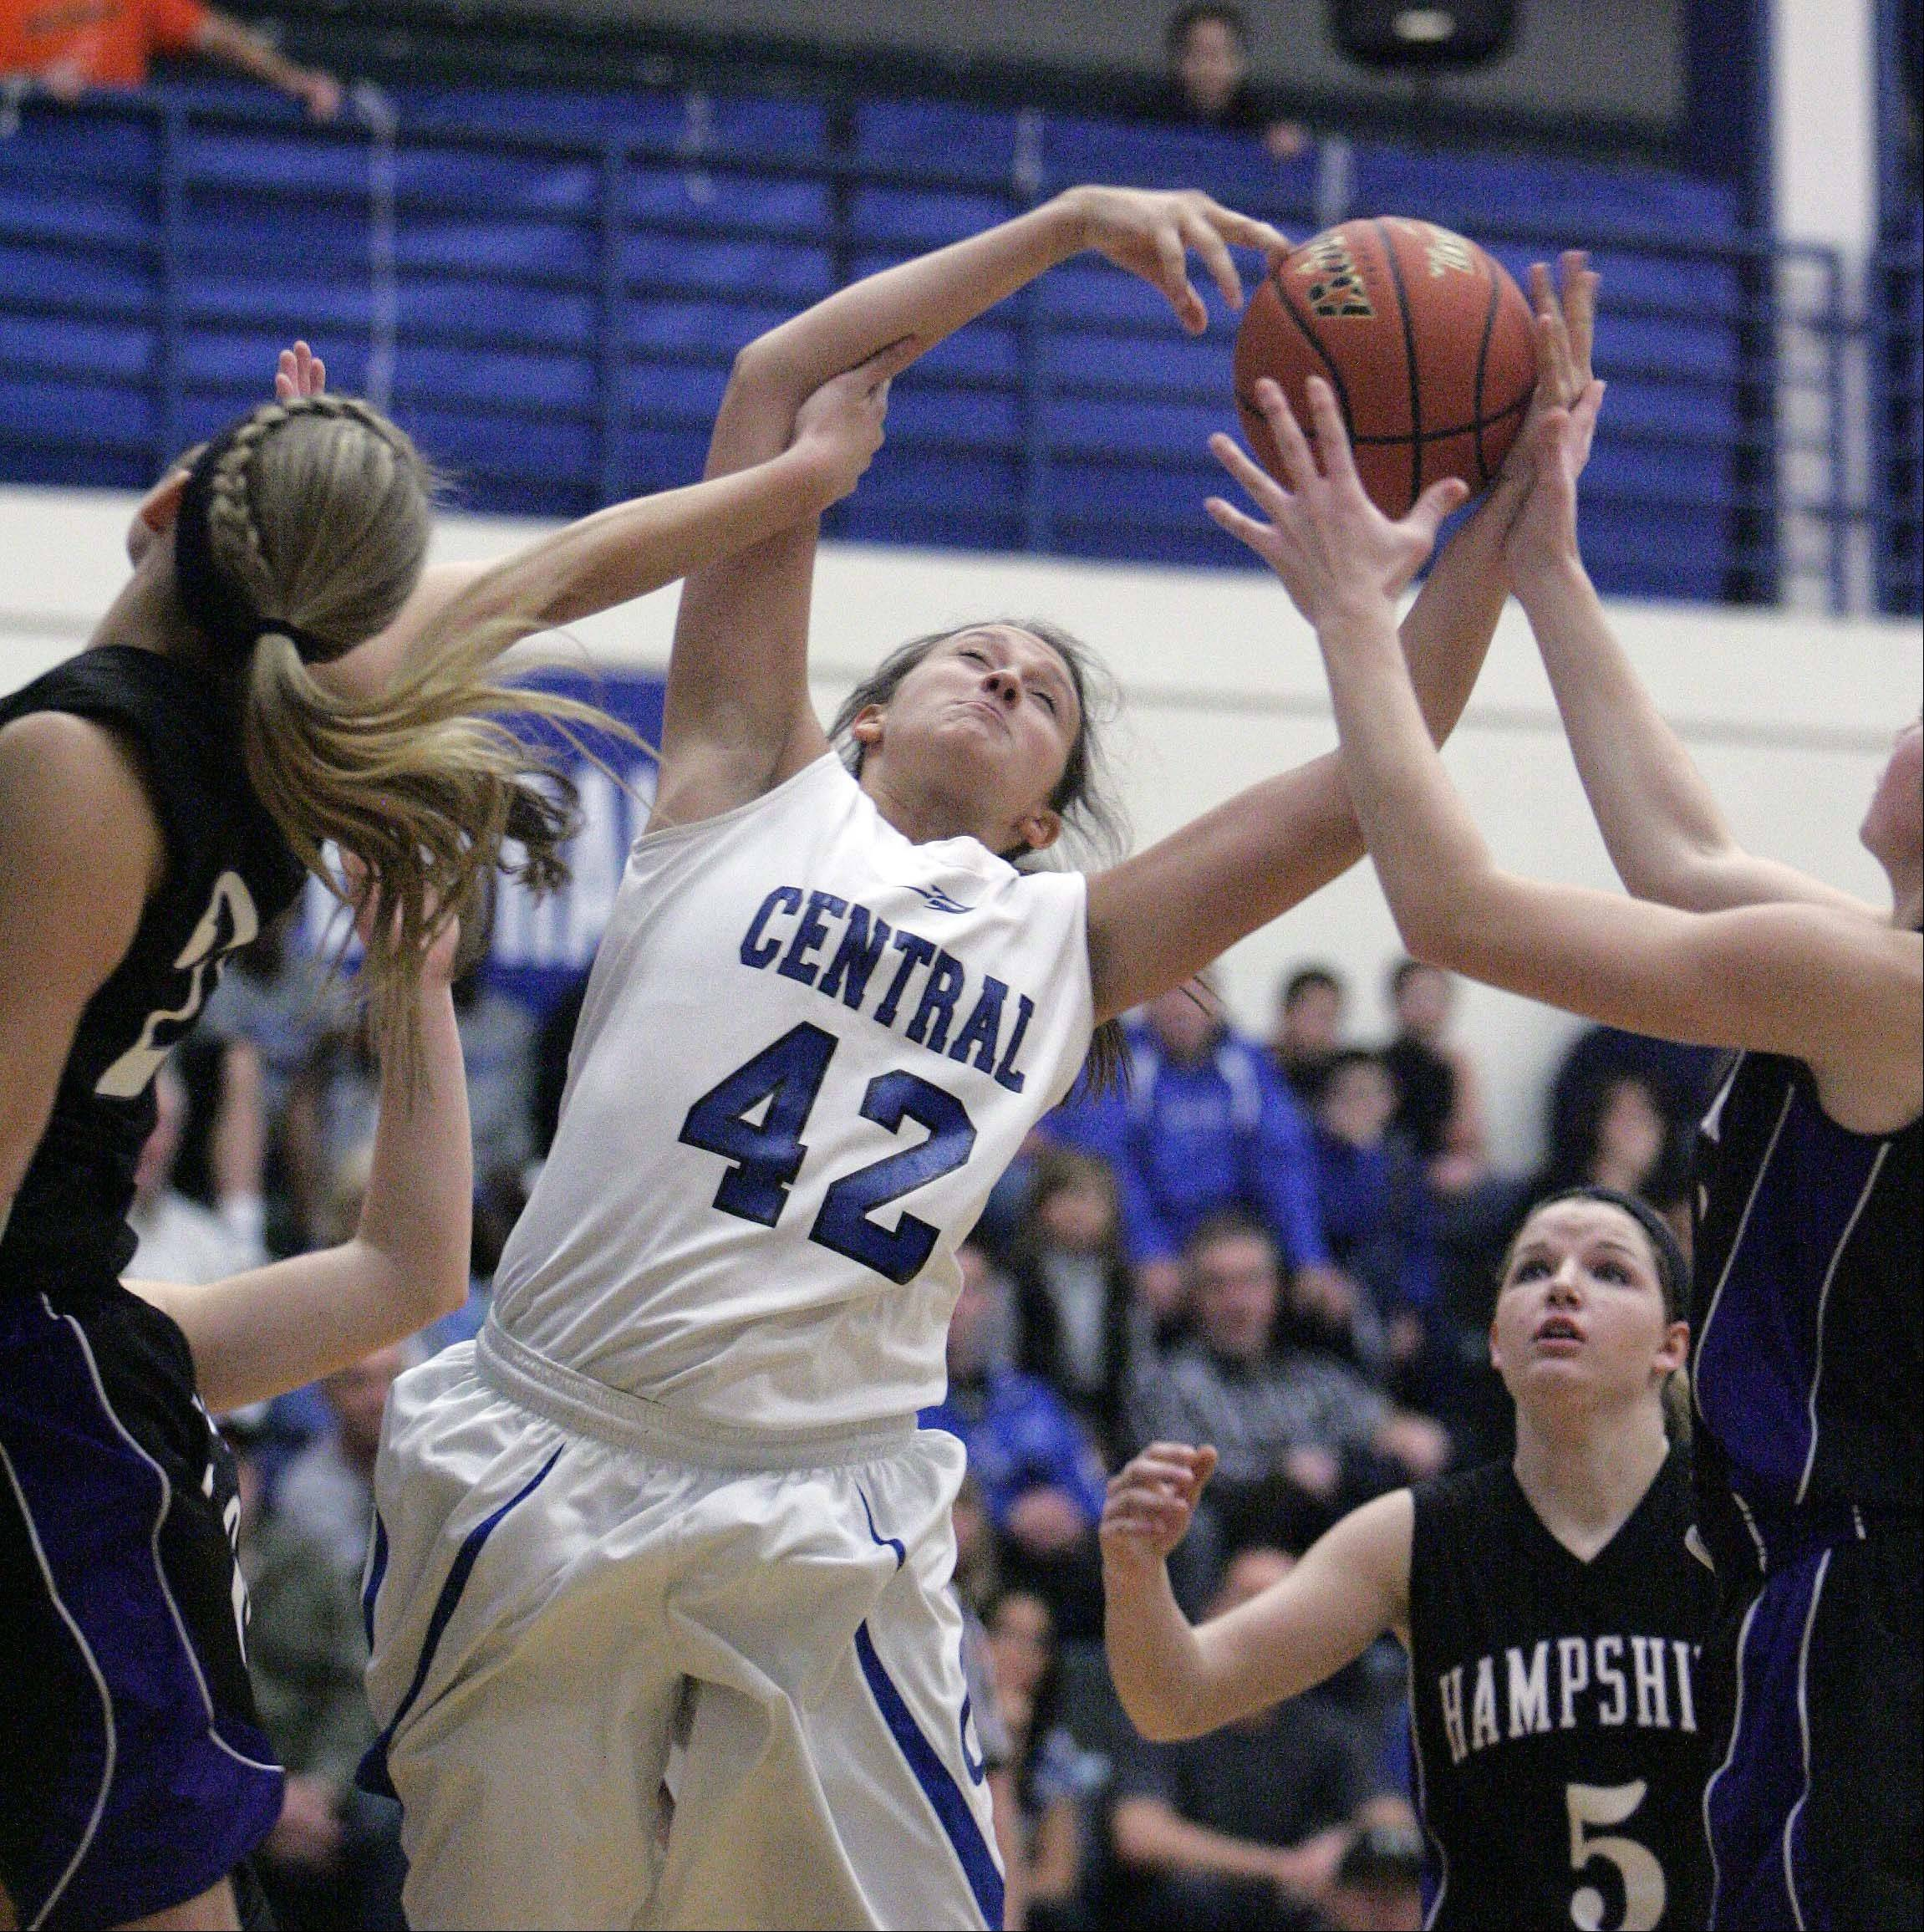 Burlington Central's Alison Colby (42) rips down a rebound during the Rockets' 48-37 win over Hampshire at Burlington Central Saturday.